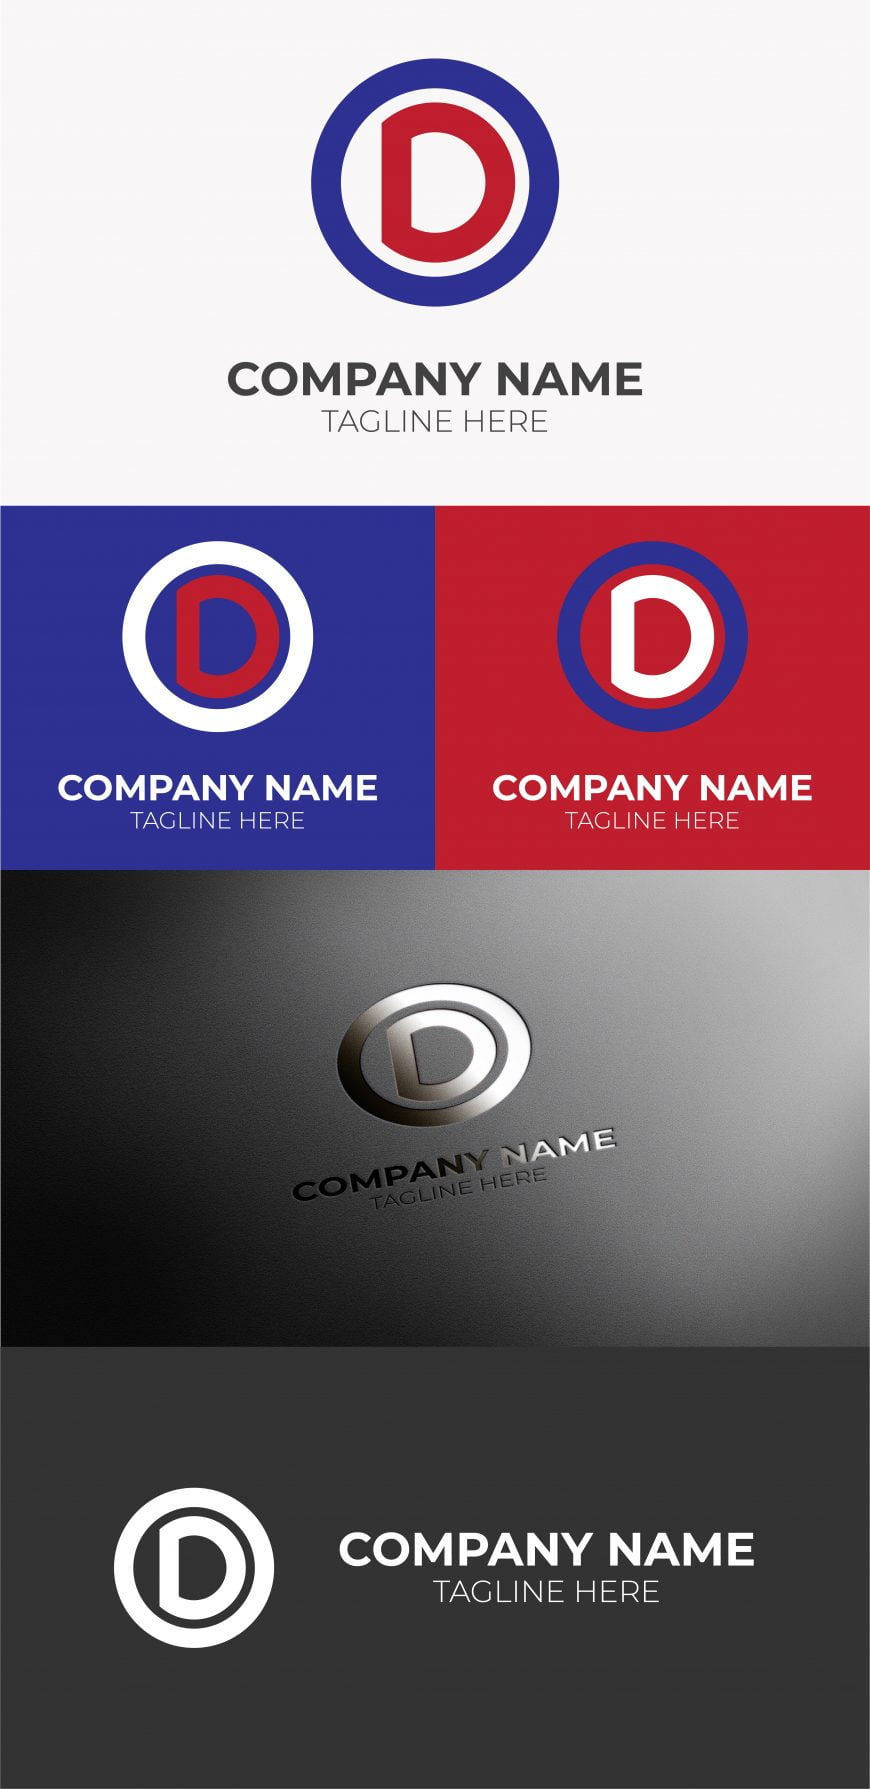 od-logo-free-template-scaled